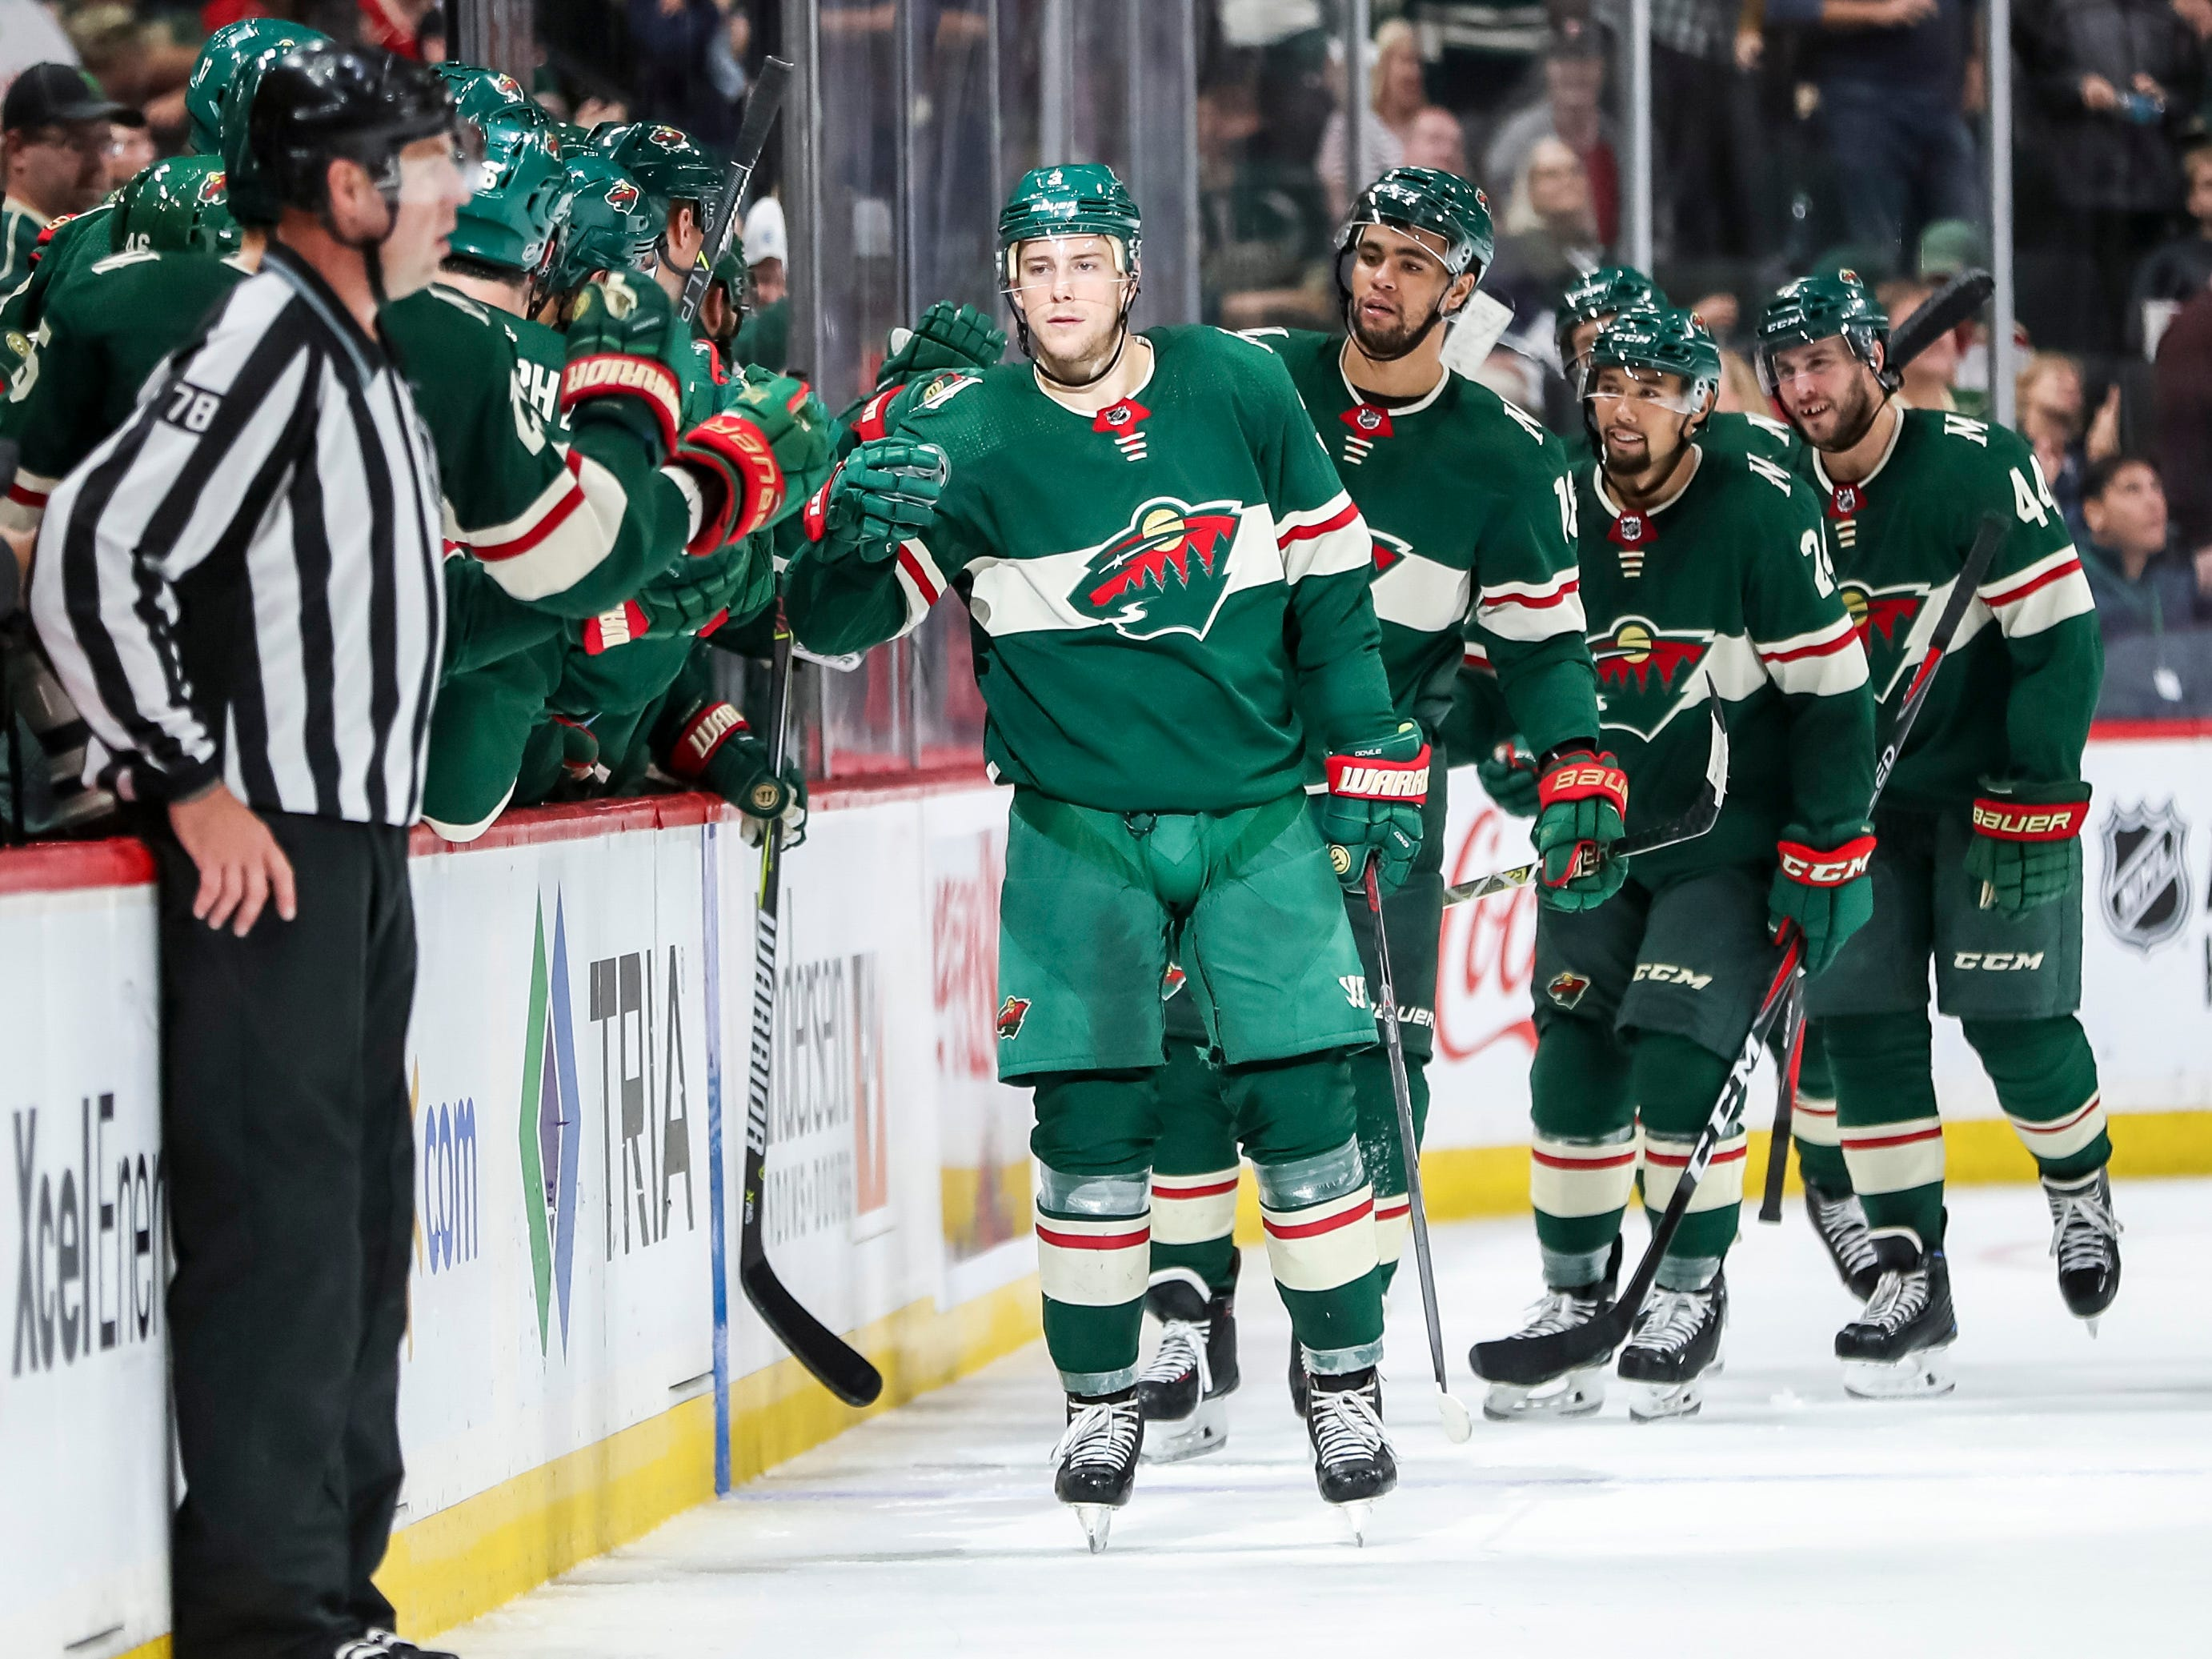 Sept. 22: Minnesota Wild forward Charlie Coyle had a hat trick in a 7-0 rout of the Colorado Avalanche.